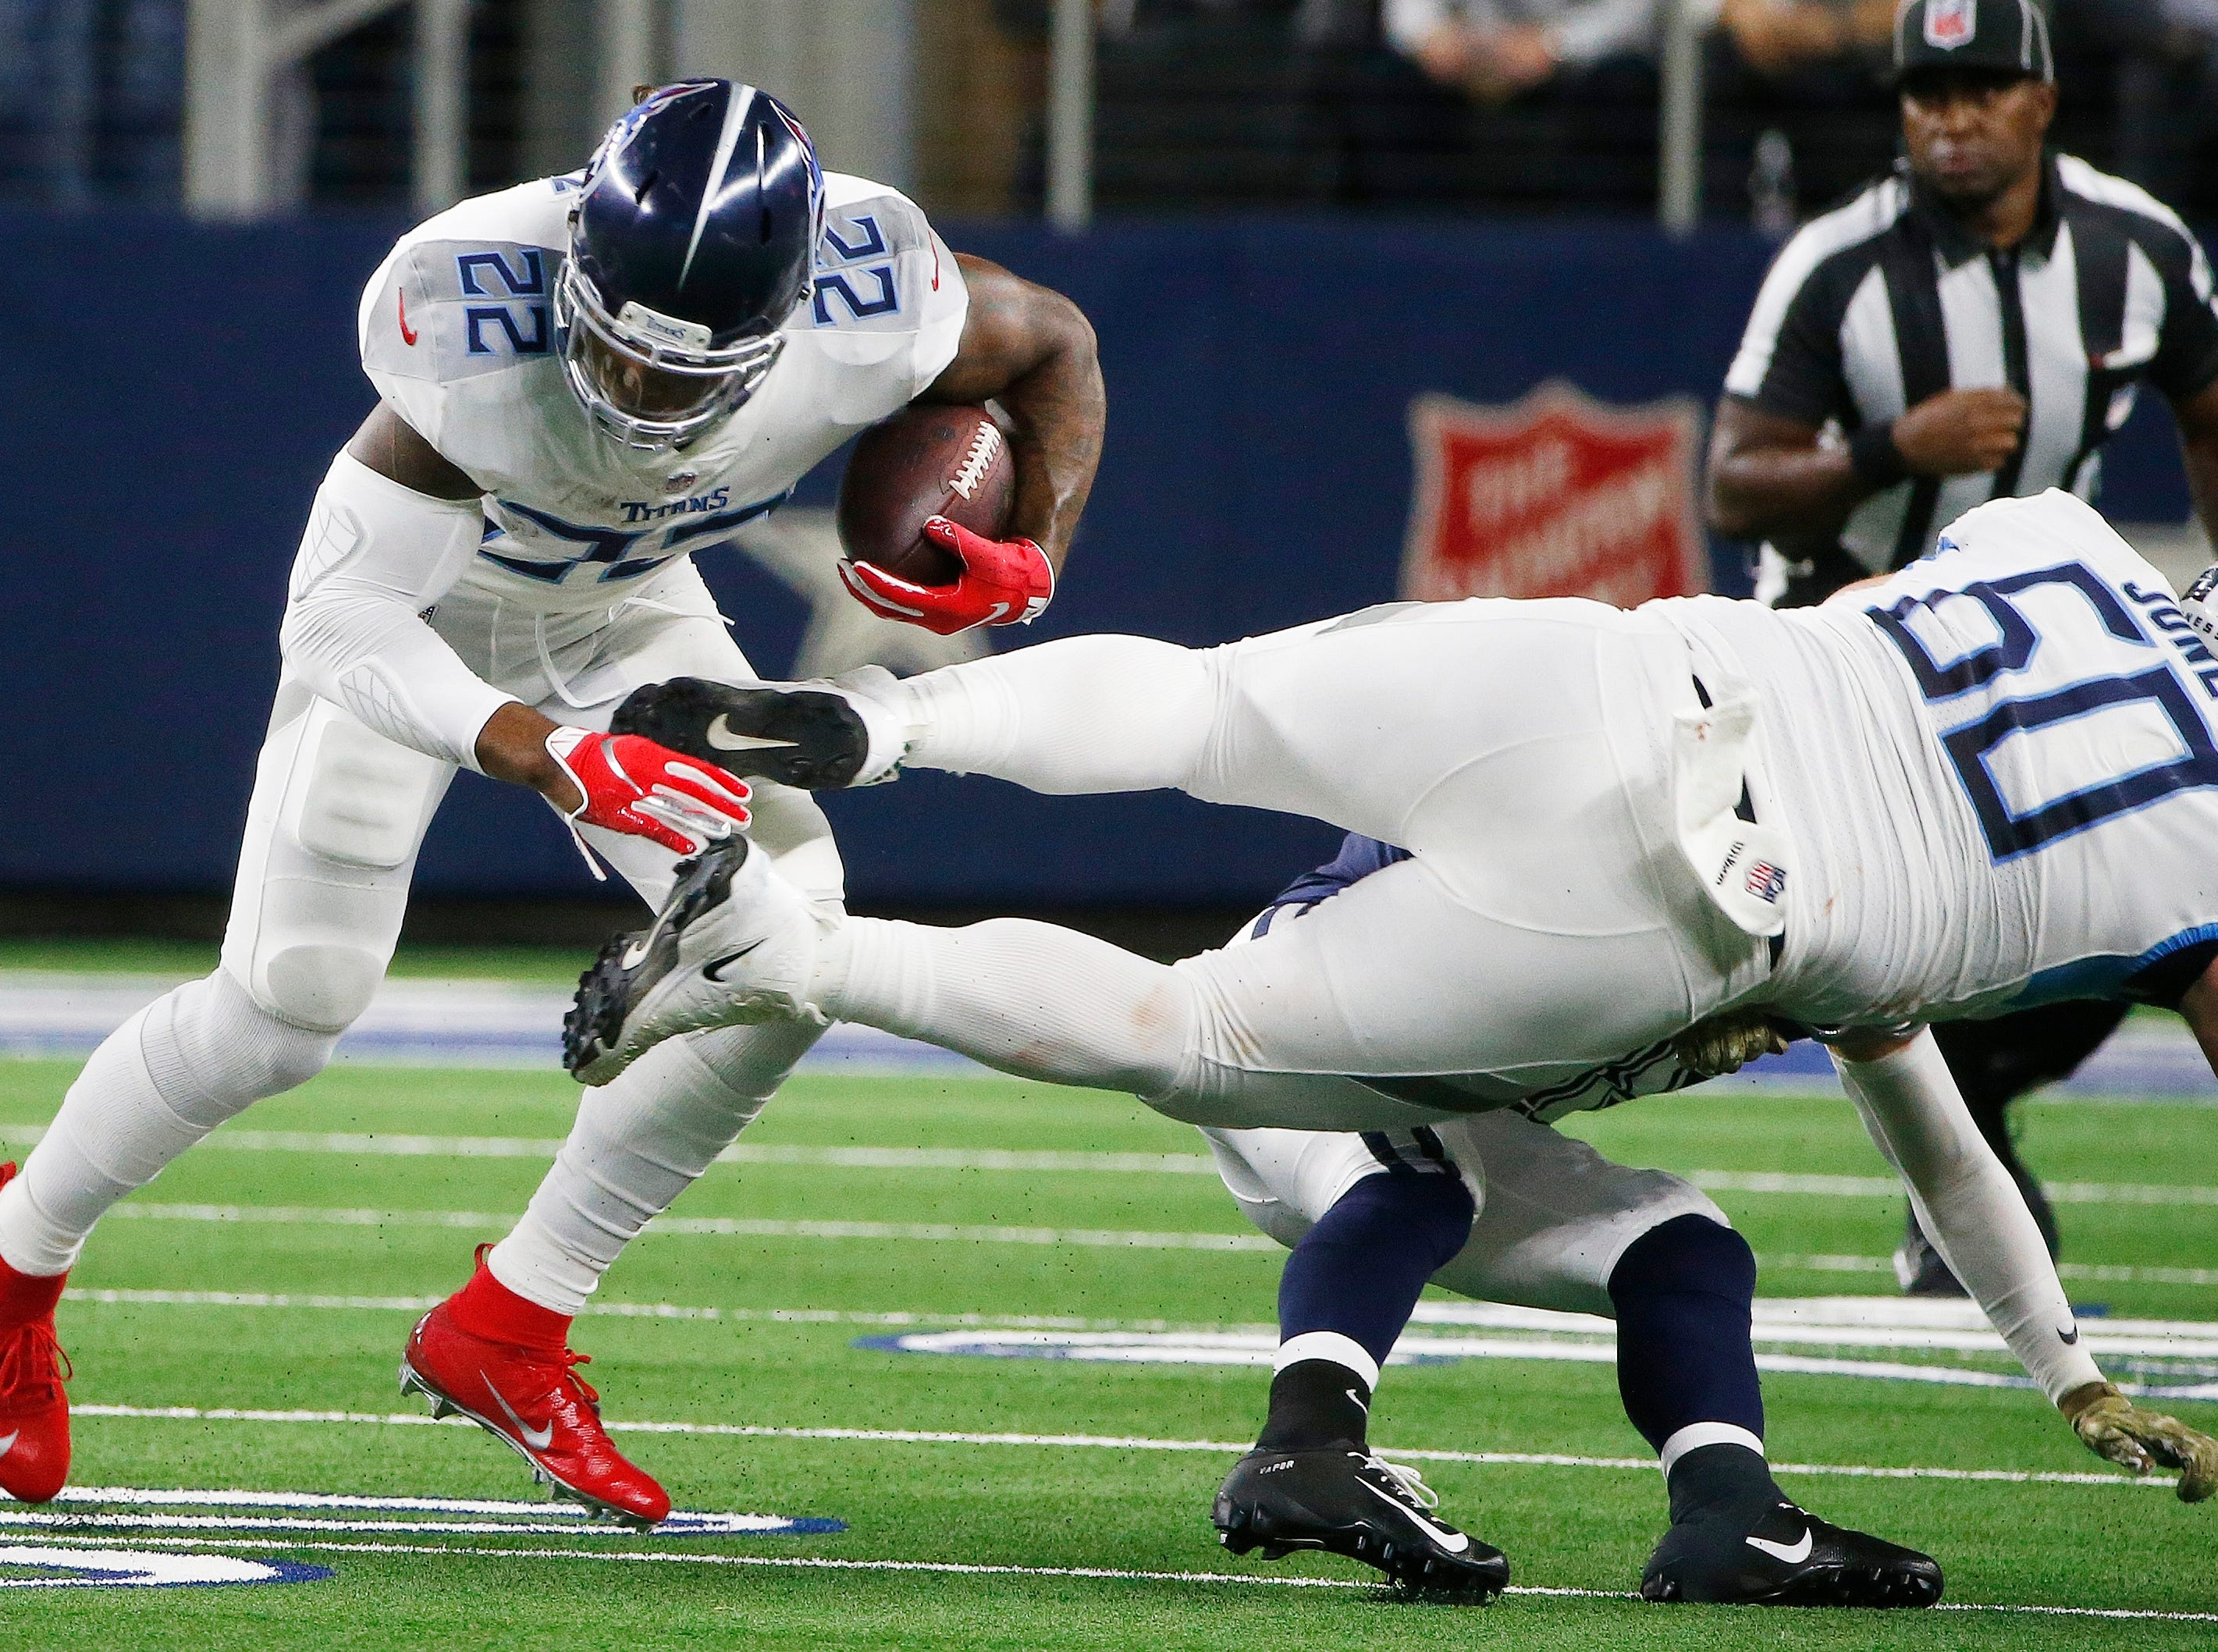 Tennessee Titans running back Derrick Henry (22) runs as Tennessee Titans linebacker Nate Palmer (50) makes a block against the Dallas Cowboys during the first half of an NFL football game, Monday, Nov. 5, 2018, in Arlington, Texas.